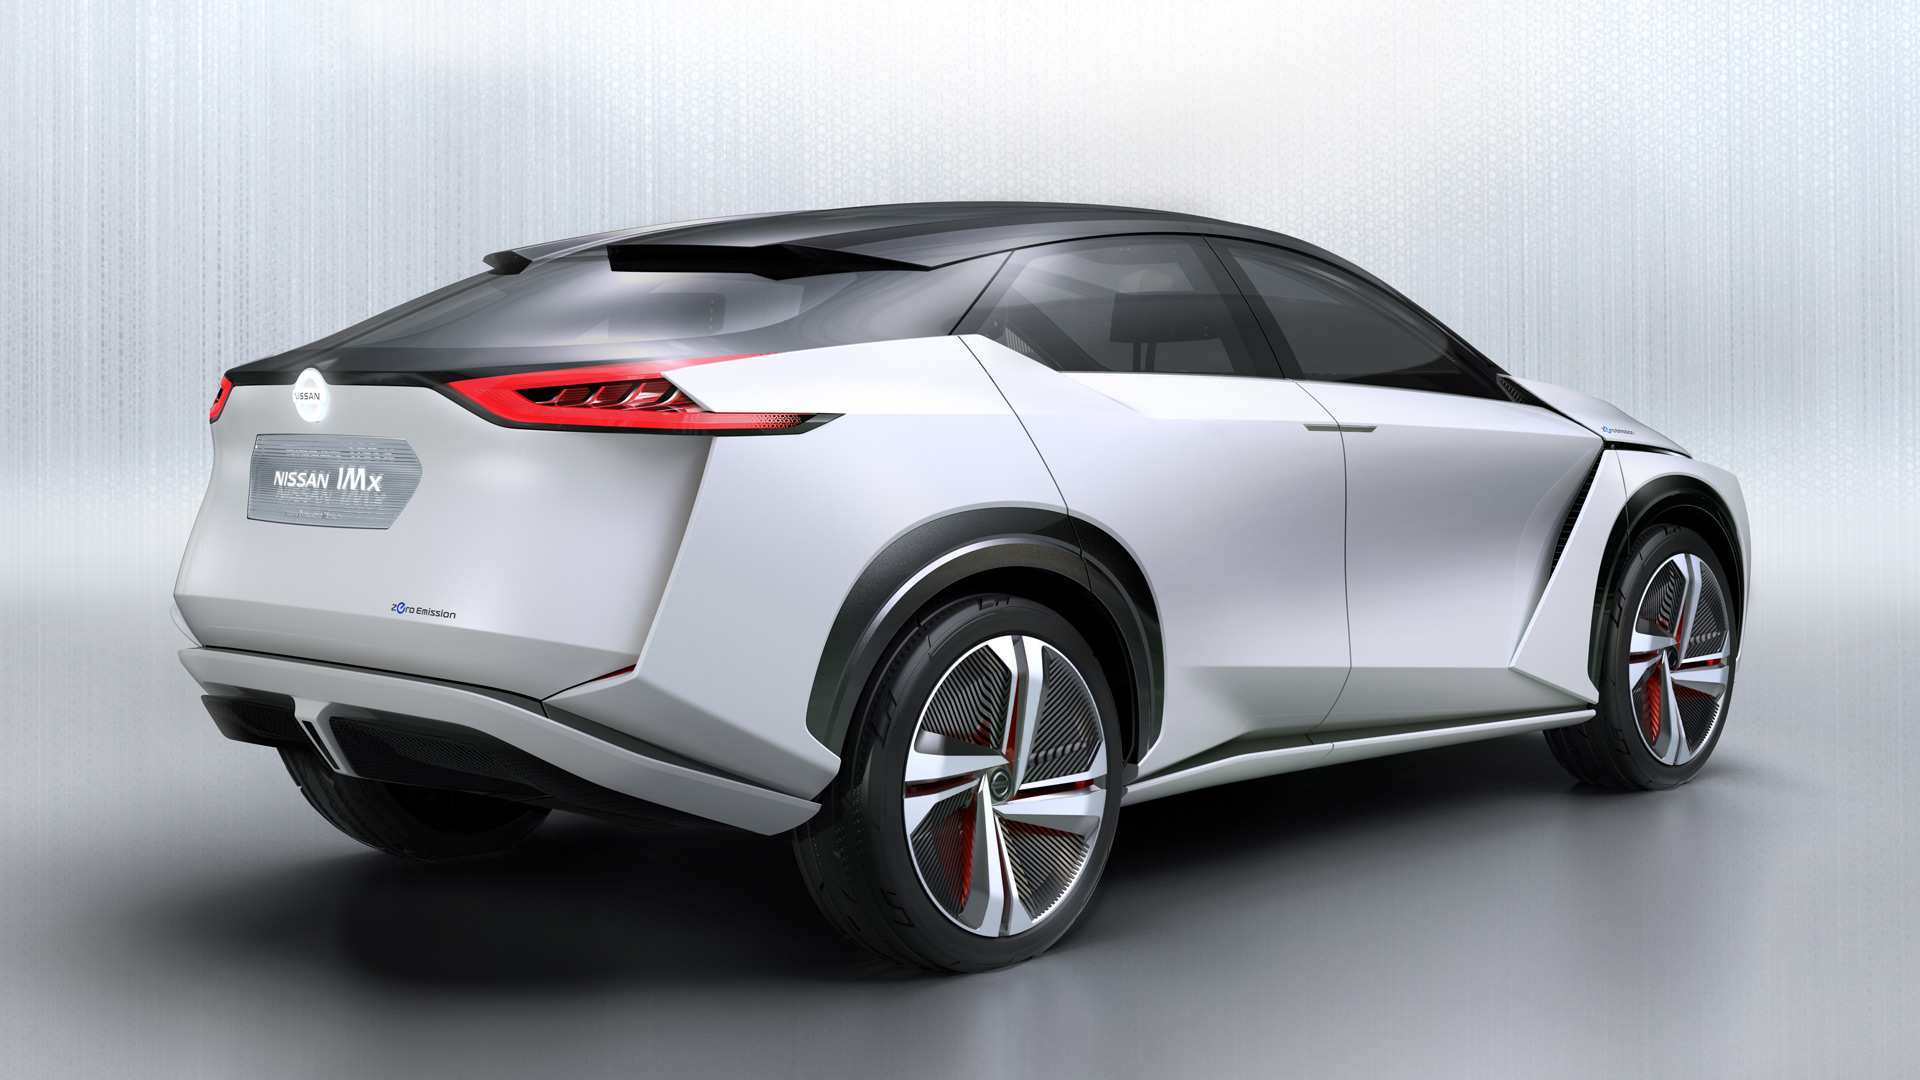 67 All New Nissan Electric Car 2020 Picture